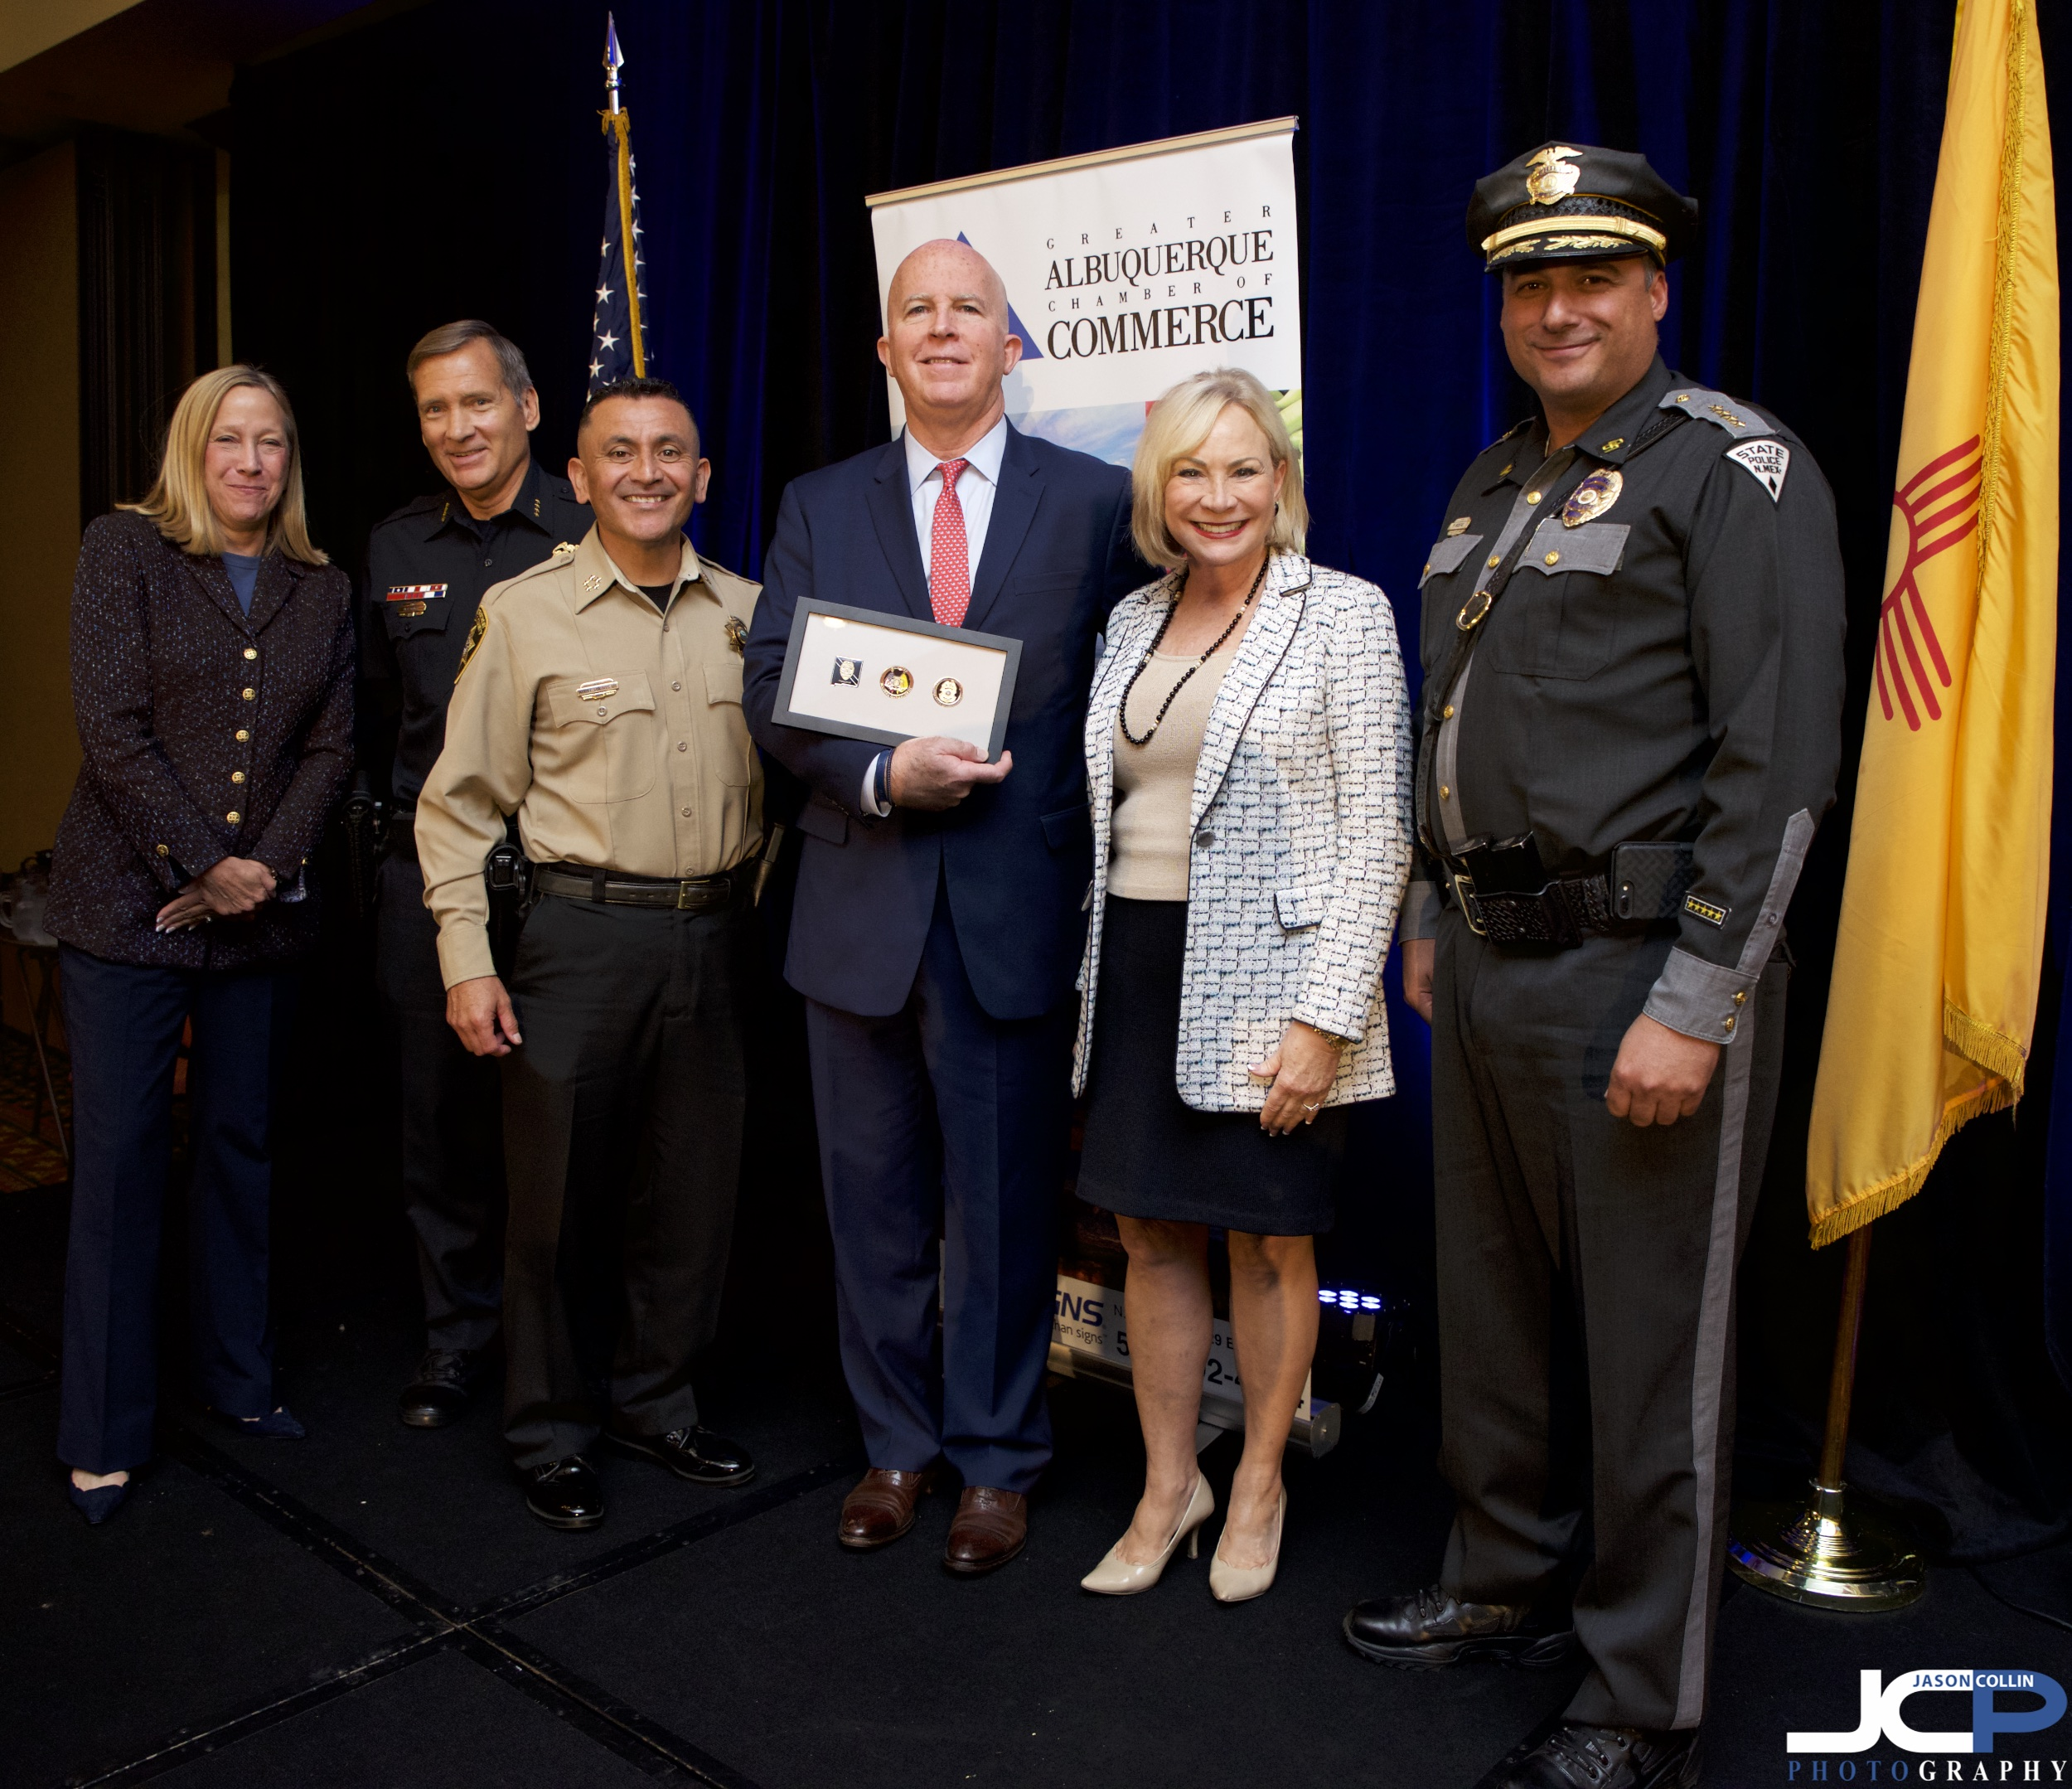 apd-nypd-9-27-2018-event-106628.jpg